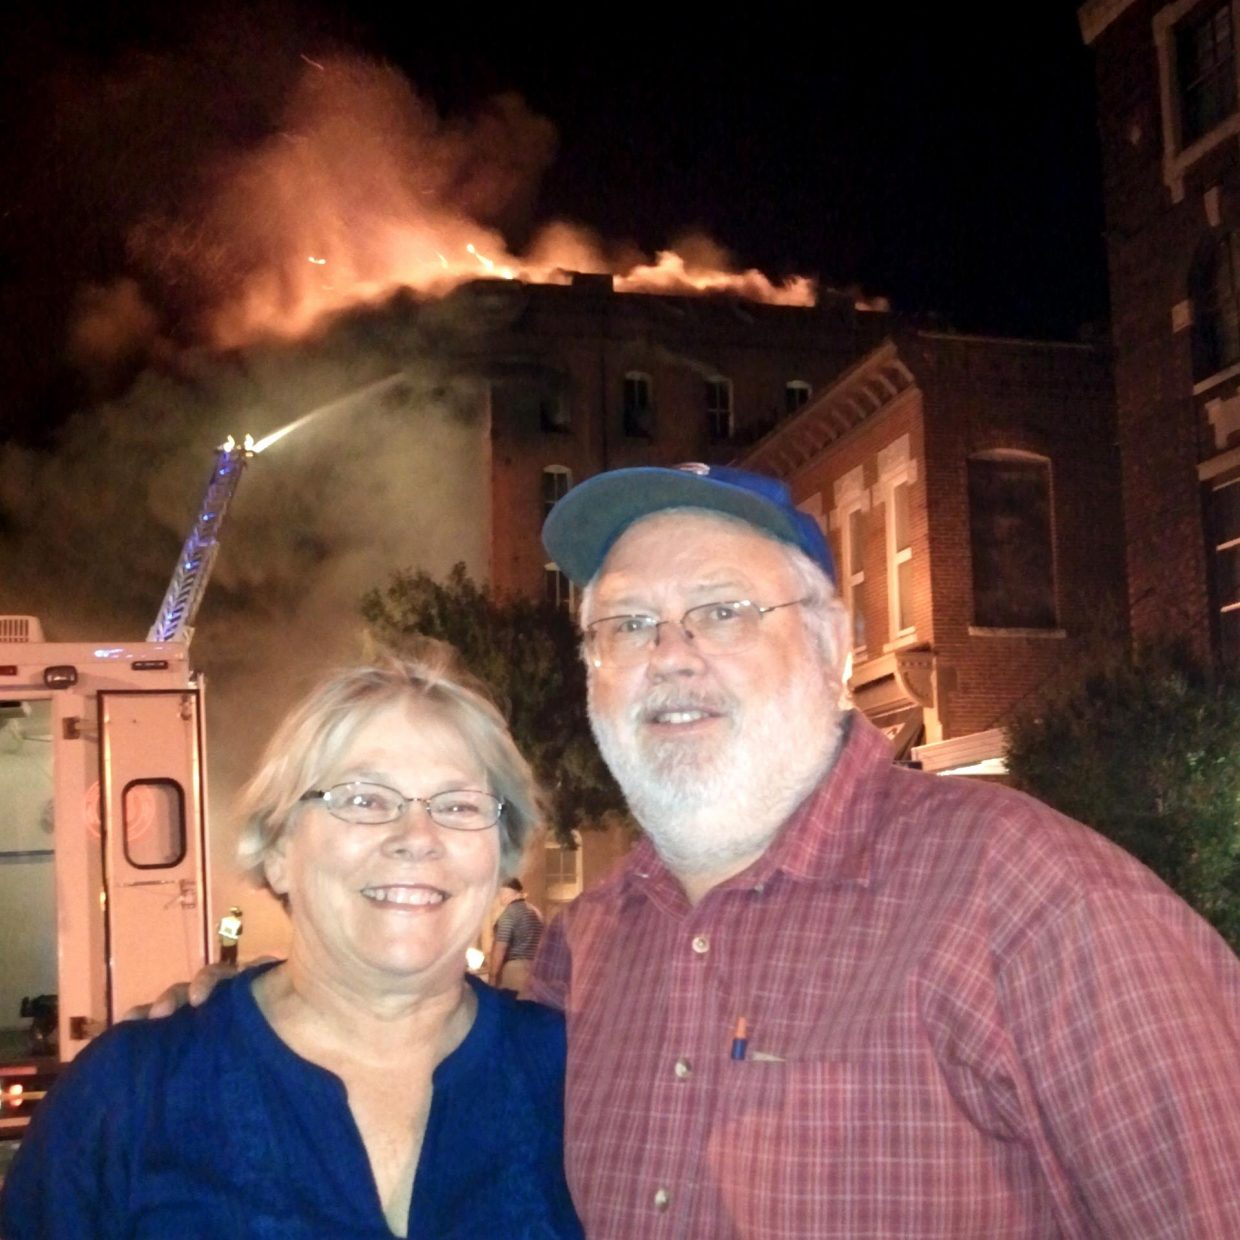 Diane and Gary Stensland, parents of Steamboat Springs resident Matt Stensland, celebrated their 50th wedding anniversary Sept. 6, 2013. They celebrated in August with all four of their children, six grandchildren and other family members at the Stensland Family Farm in Fairview, S.D. They spent part of their anniversary watching this fire at an abandoned historic building in Quincy, Ill. They live in Urbana, Ill., but were in Quincy watching their granddaughter Morgan McGinnis play tennis at Quincy University.